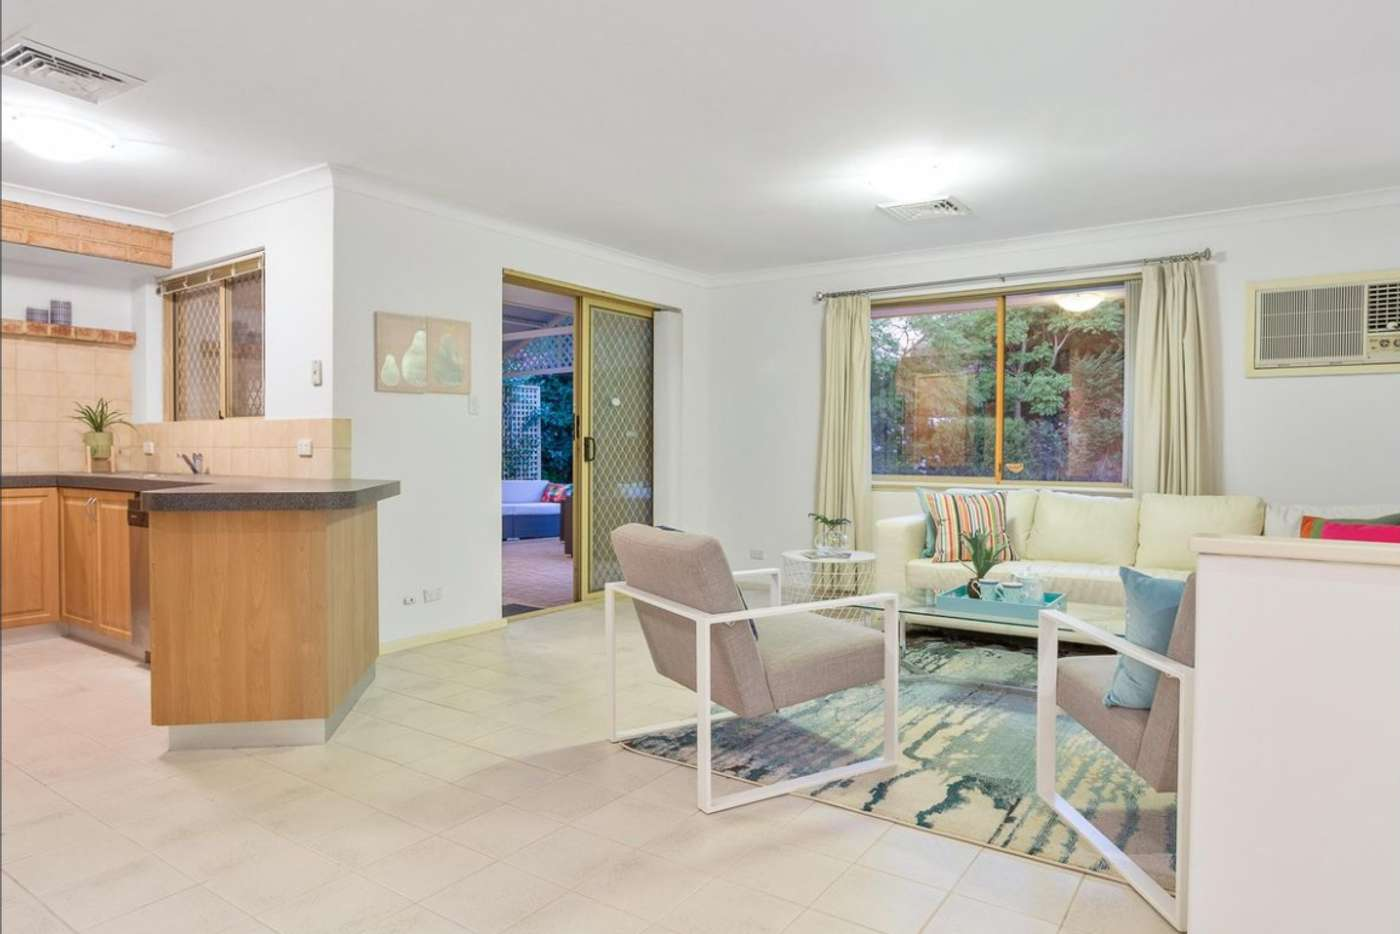 Seventh view of Homely house listing, 14 Lourdes Street, Lesmurdie WA 6076